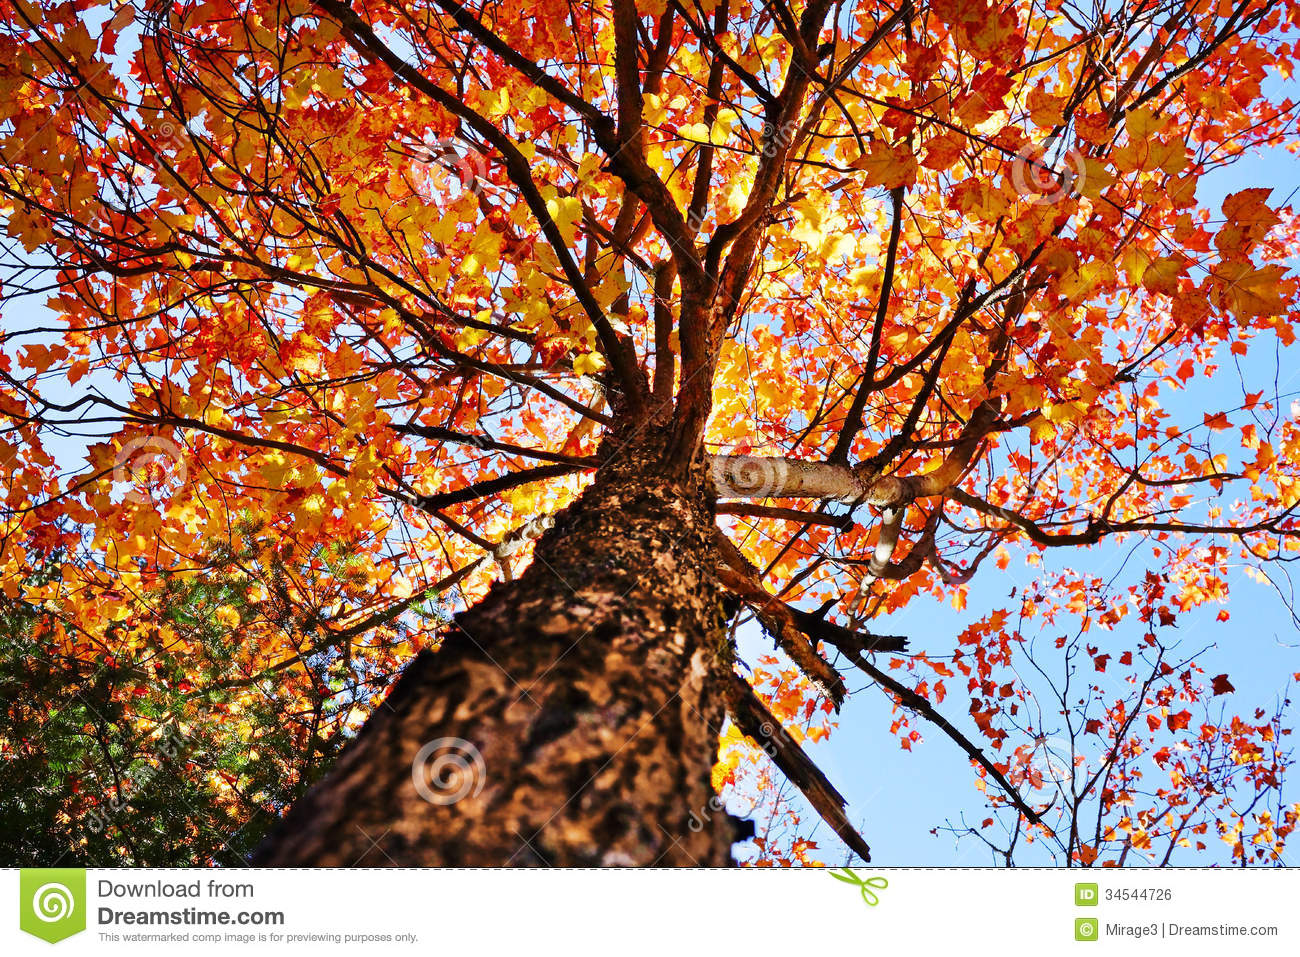 Falling Maple Leaves Wallpaper Under A Maple Tree Royalty Free Stock Image Image 34544726